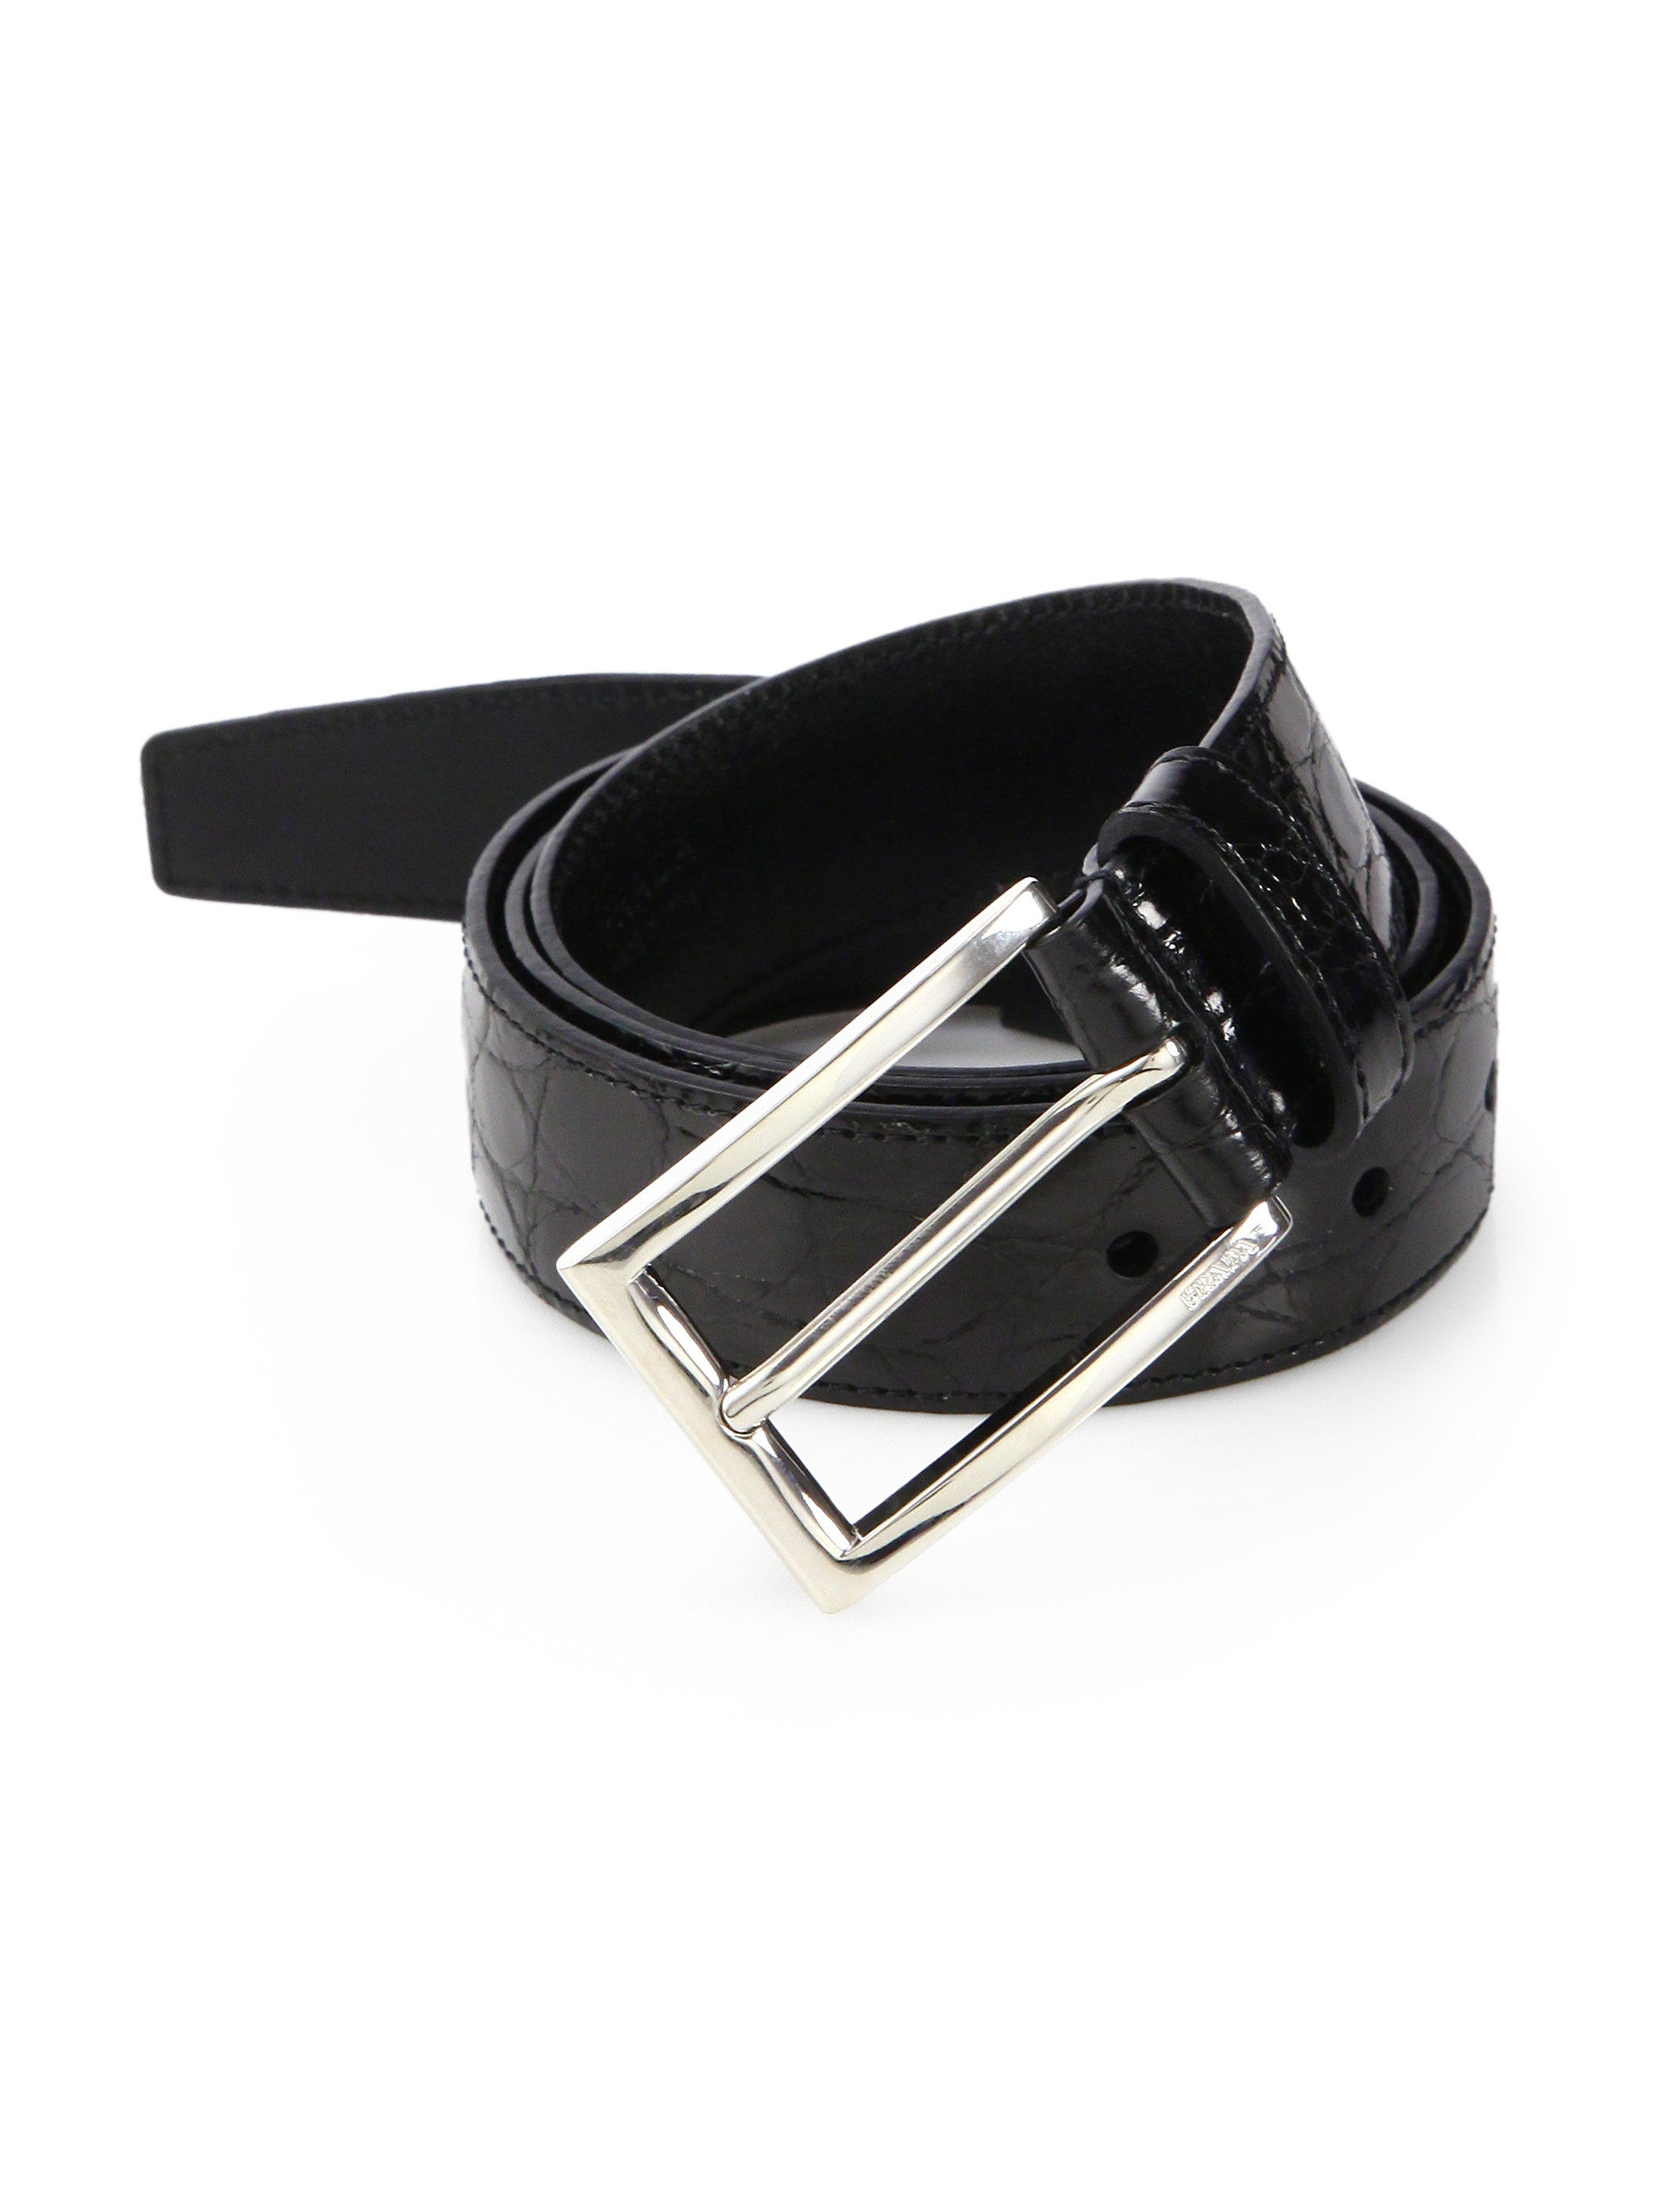 Men\u0026#39;s Prada Belts | Lyst?